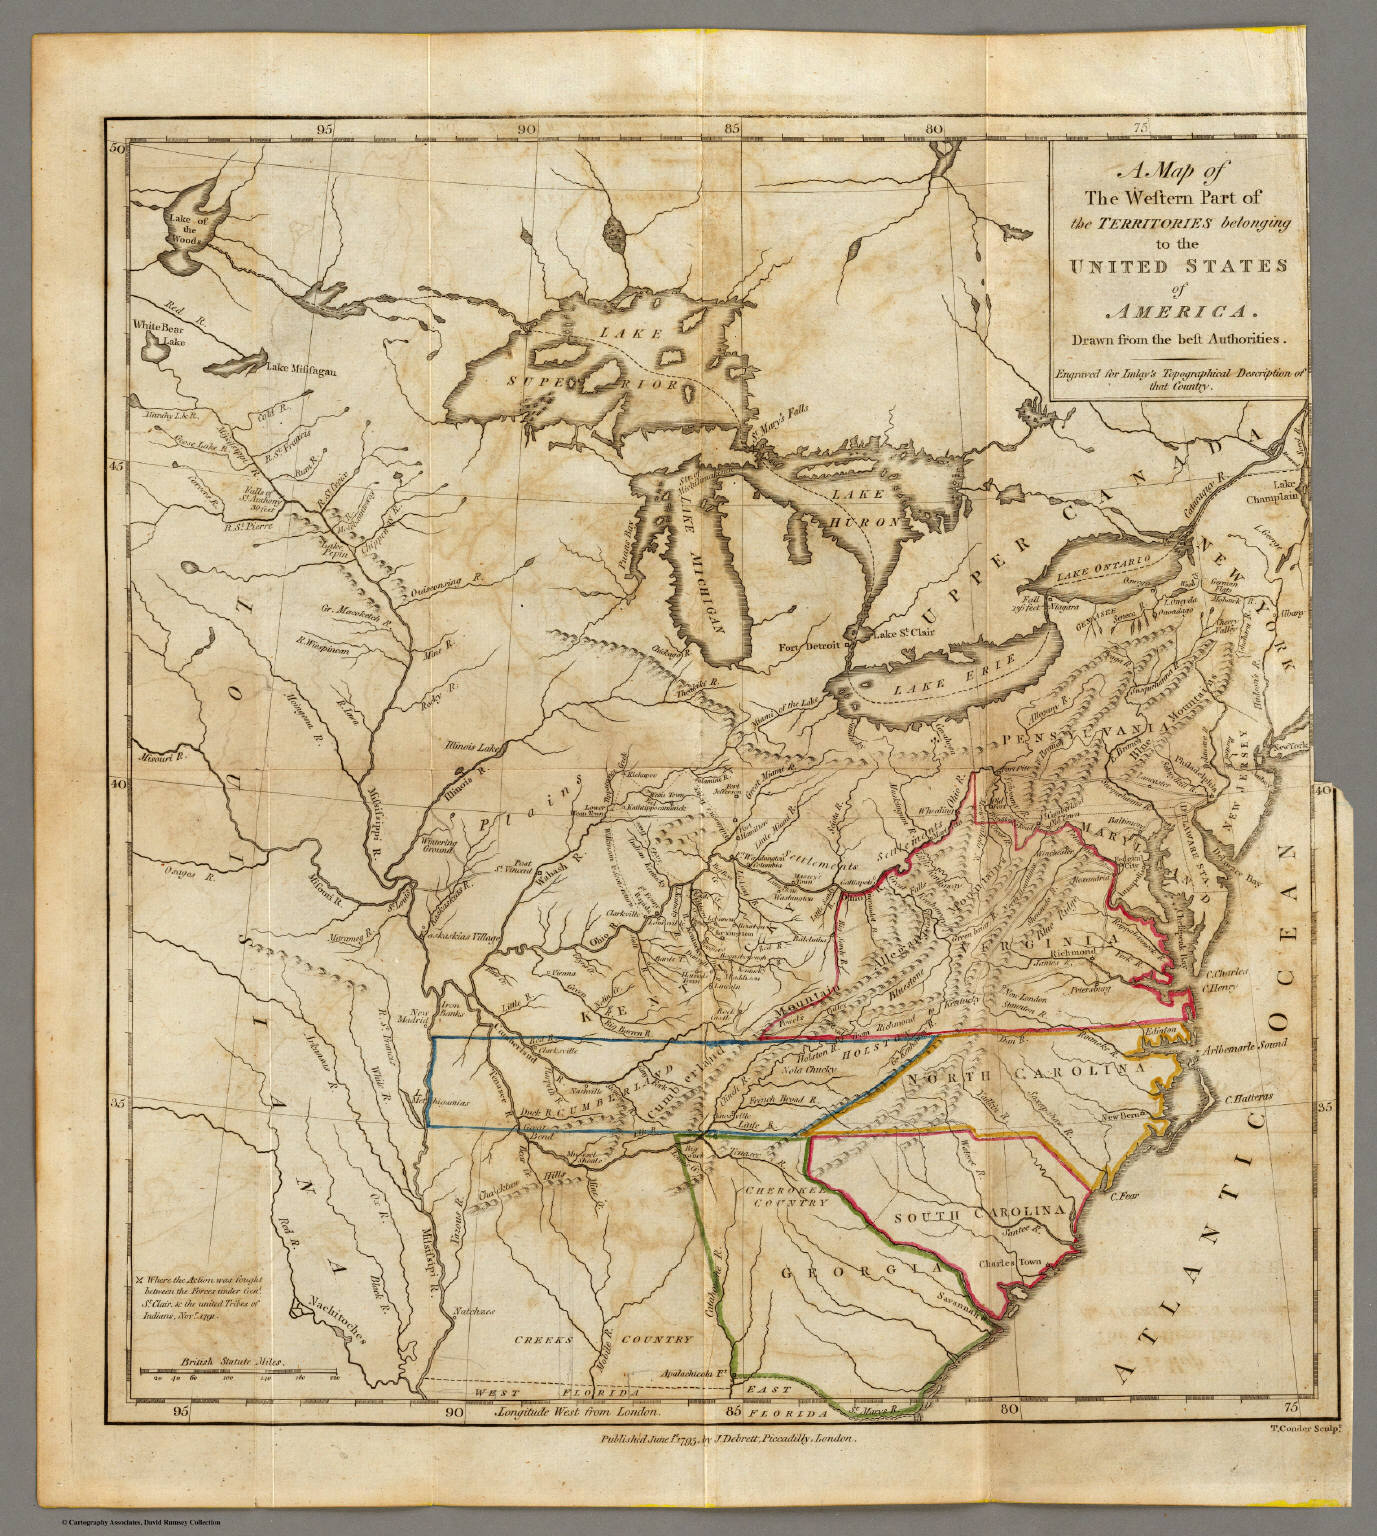 US Westward Expansion Through Maps Brown University Before Lewis - Map of us states in 1800s